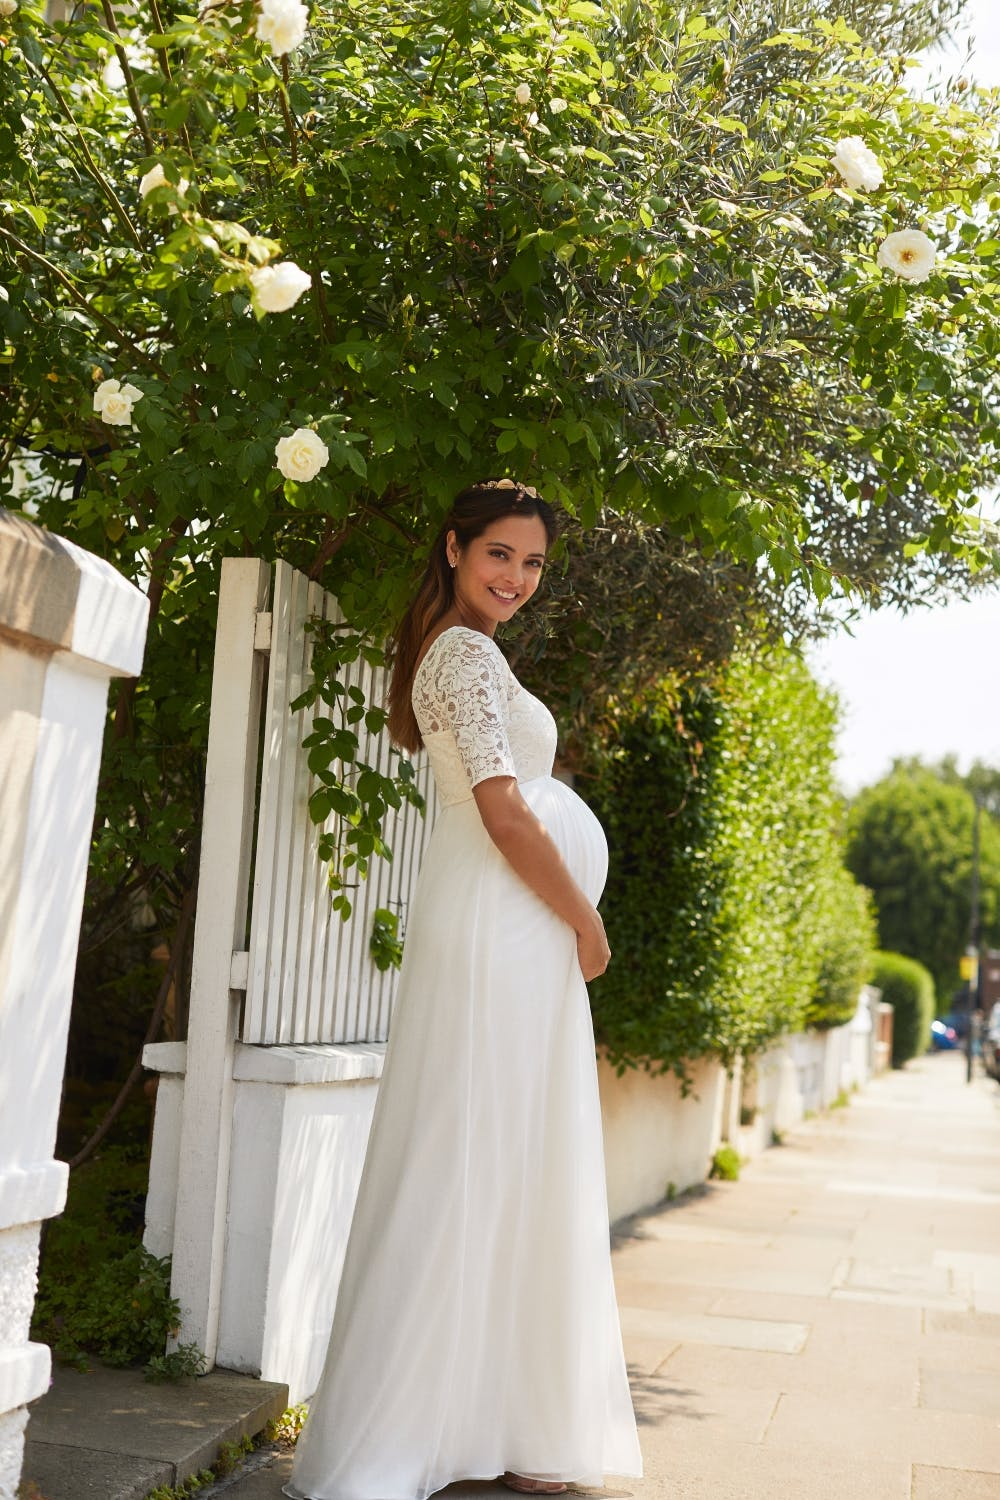 Maternity Wedding Dresses The Best Dresses For Pregnant Brides